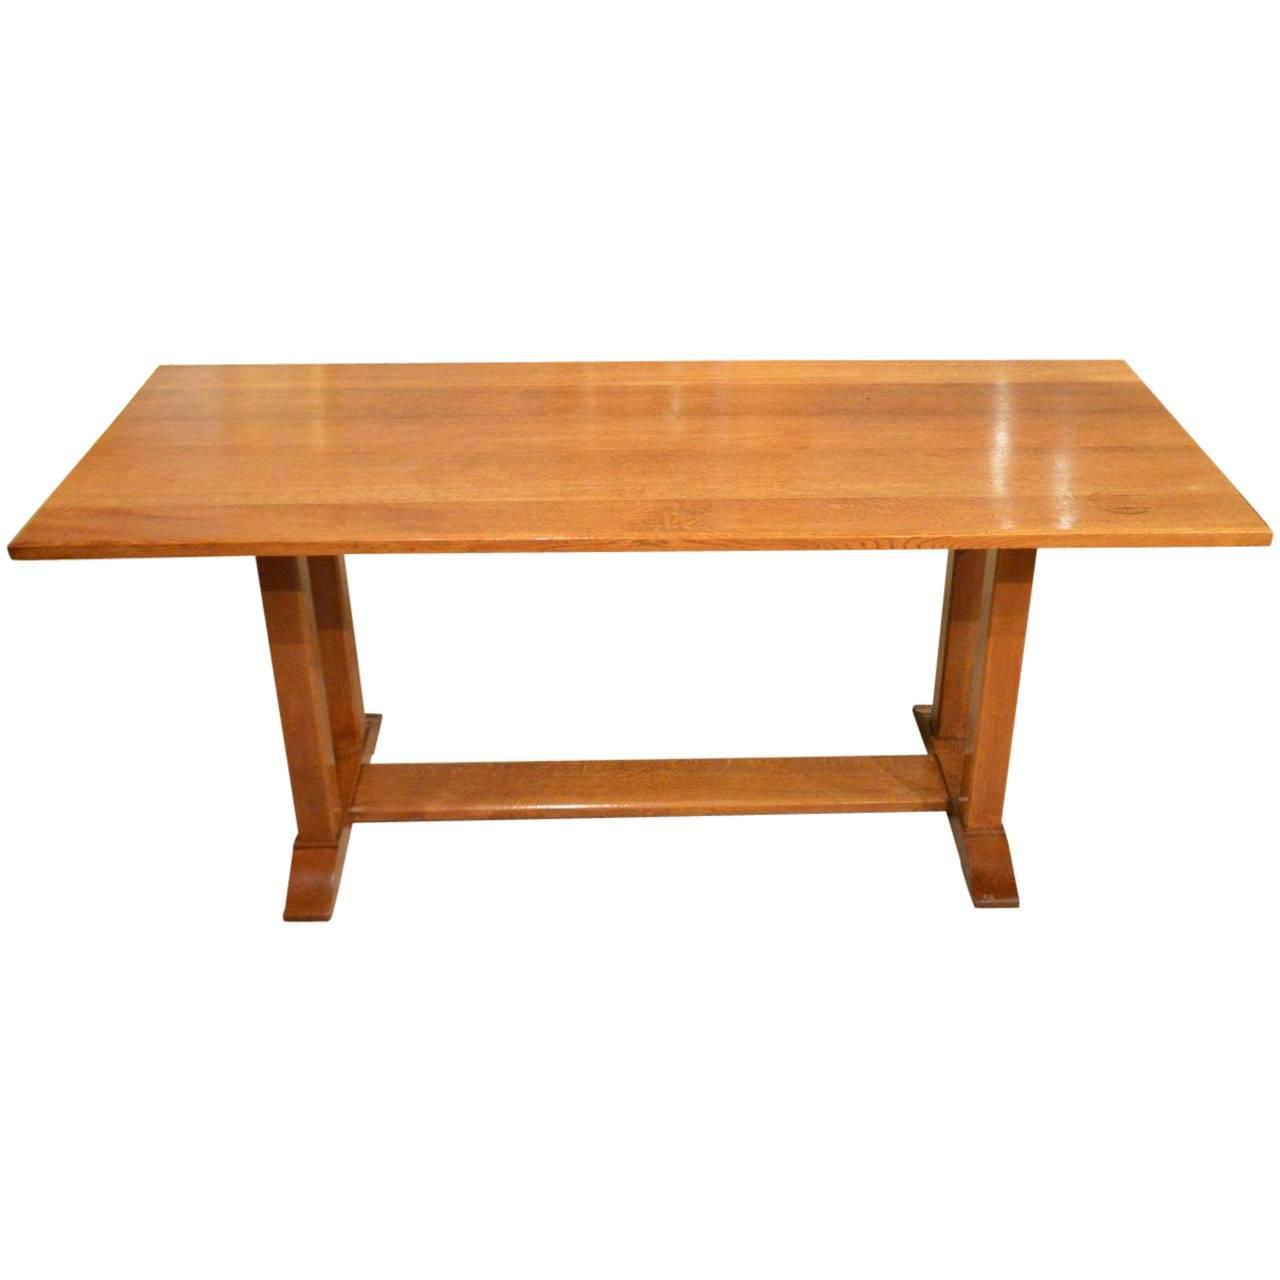 Gordon Russell Coffee Table Rare Oak Arts And Crafts Refectory Table By Gordon Russell At 1stdibs